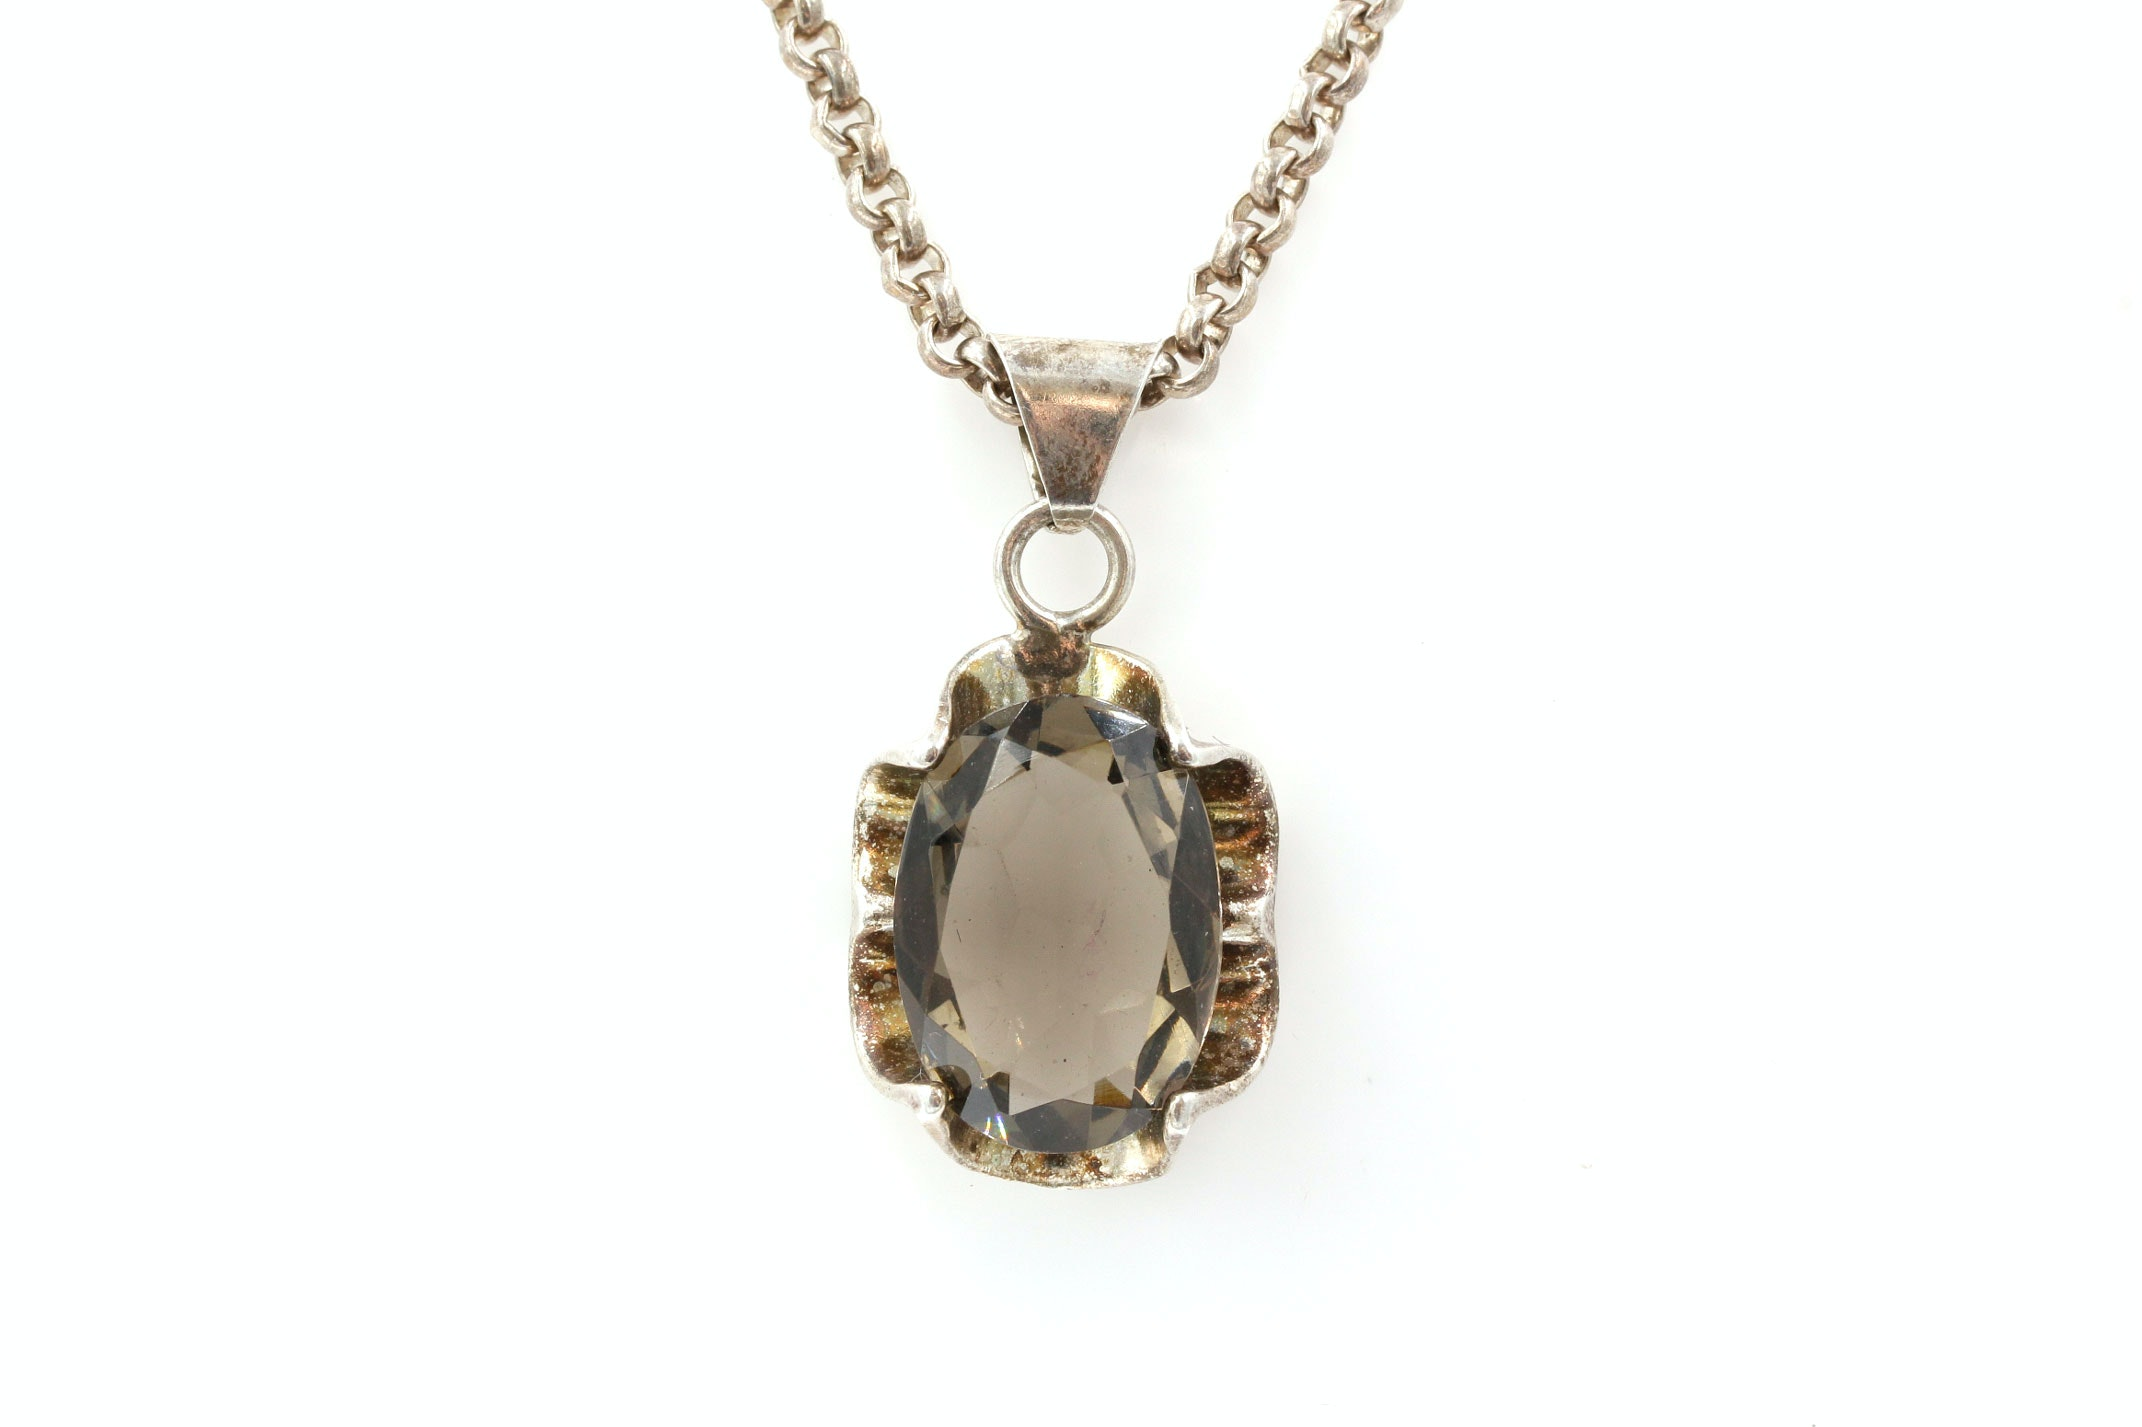 Sterling Silver Necklace with Glass Pendant